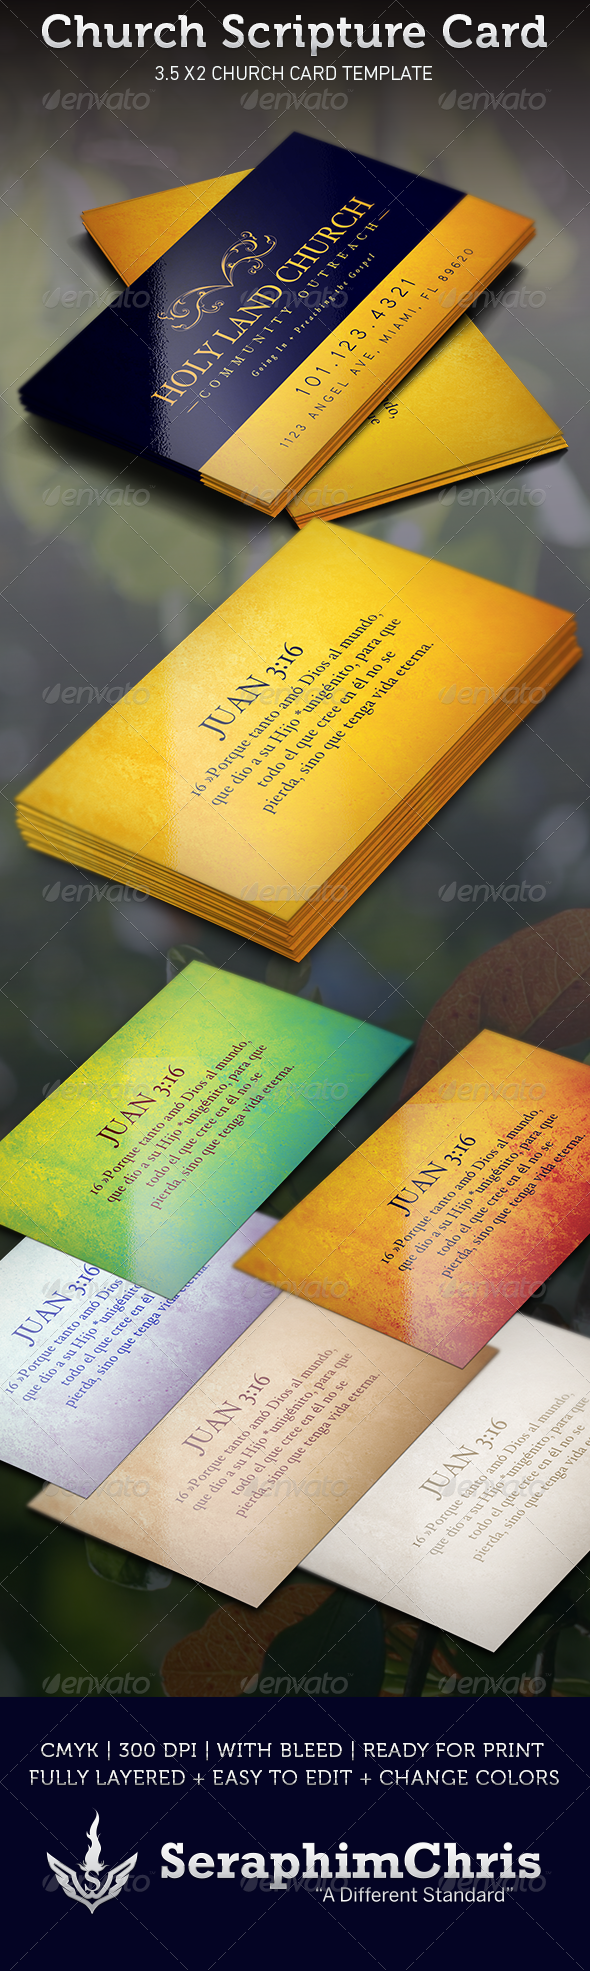 GraphicRiver Church Scripture Card Template 3524819